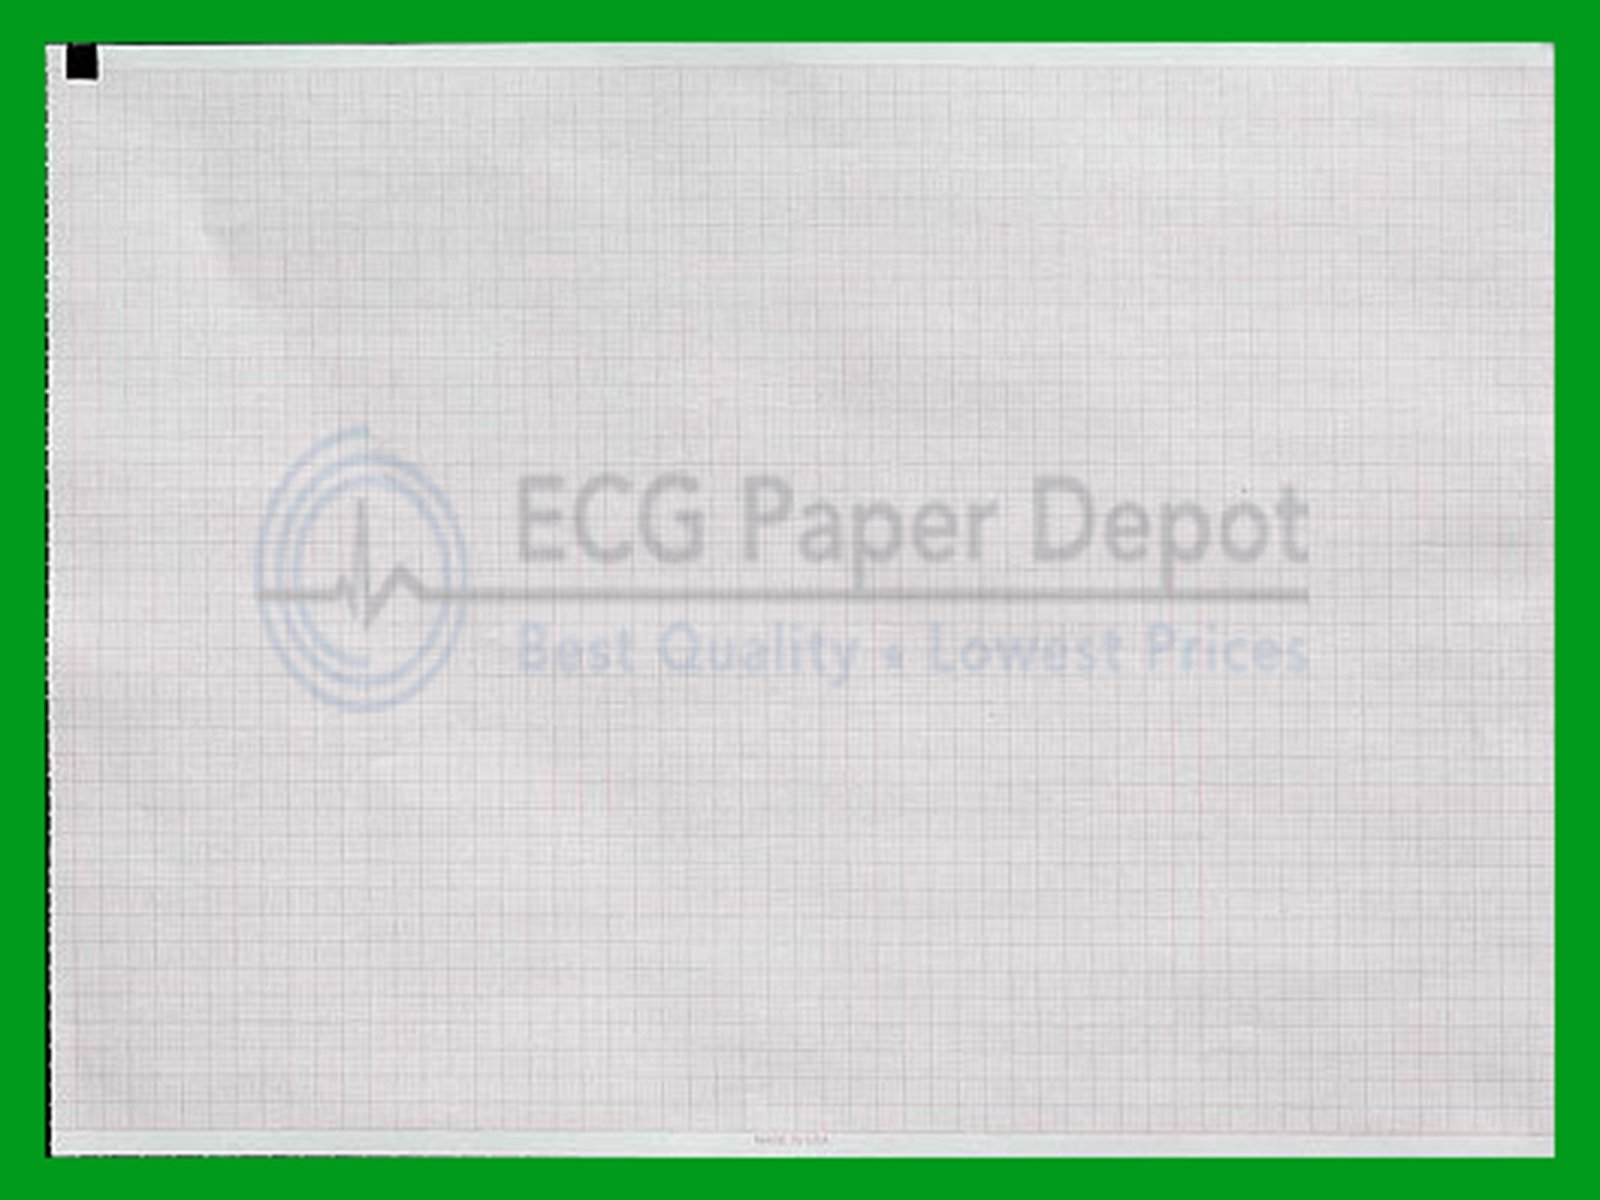 Schiller Compatible 2157-017A Generic ECG Paper 8 Pack, Z-Fold, Red Grid, 210mm x 280mm by Schiller Compatible (Image #1)